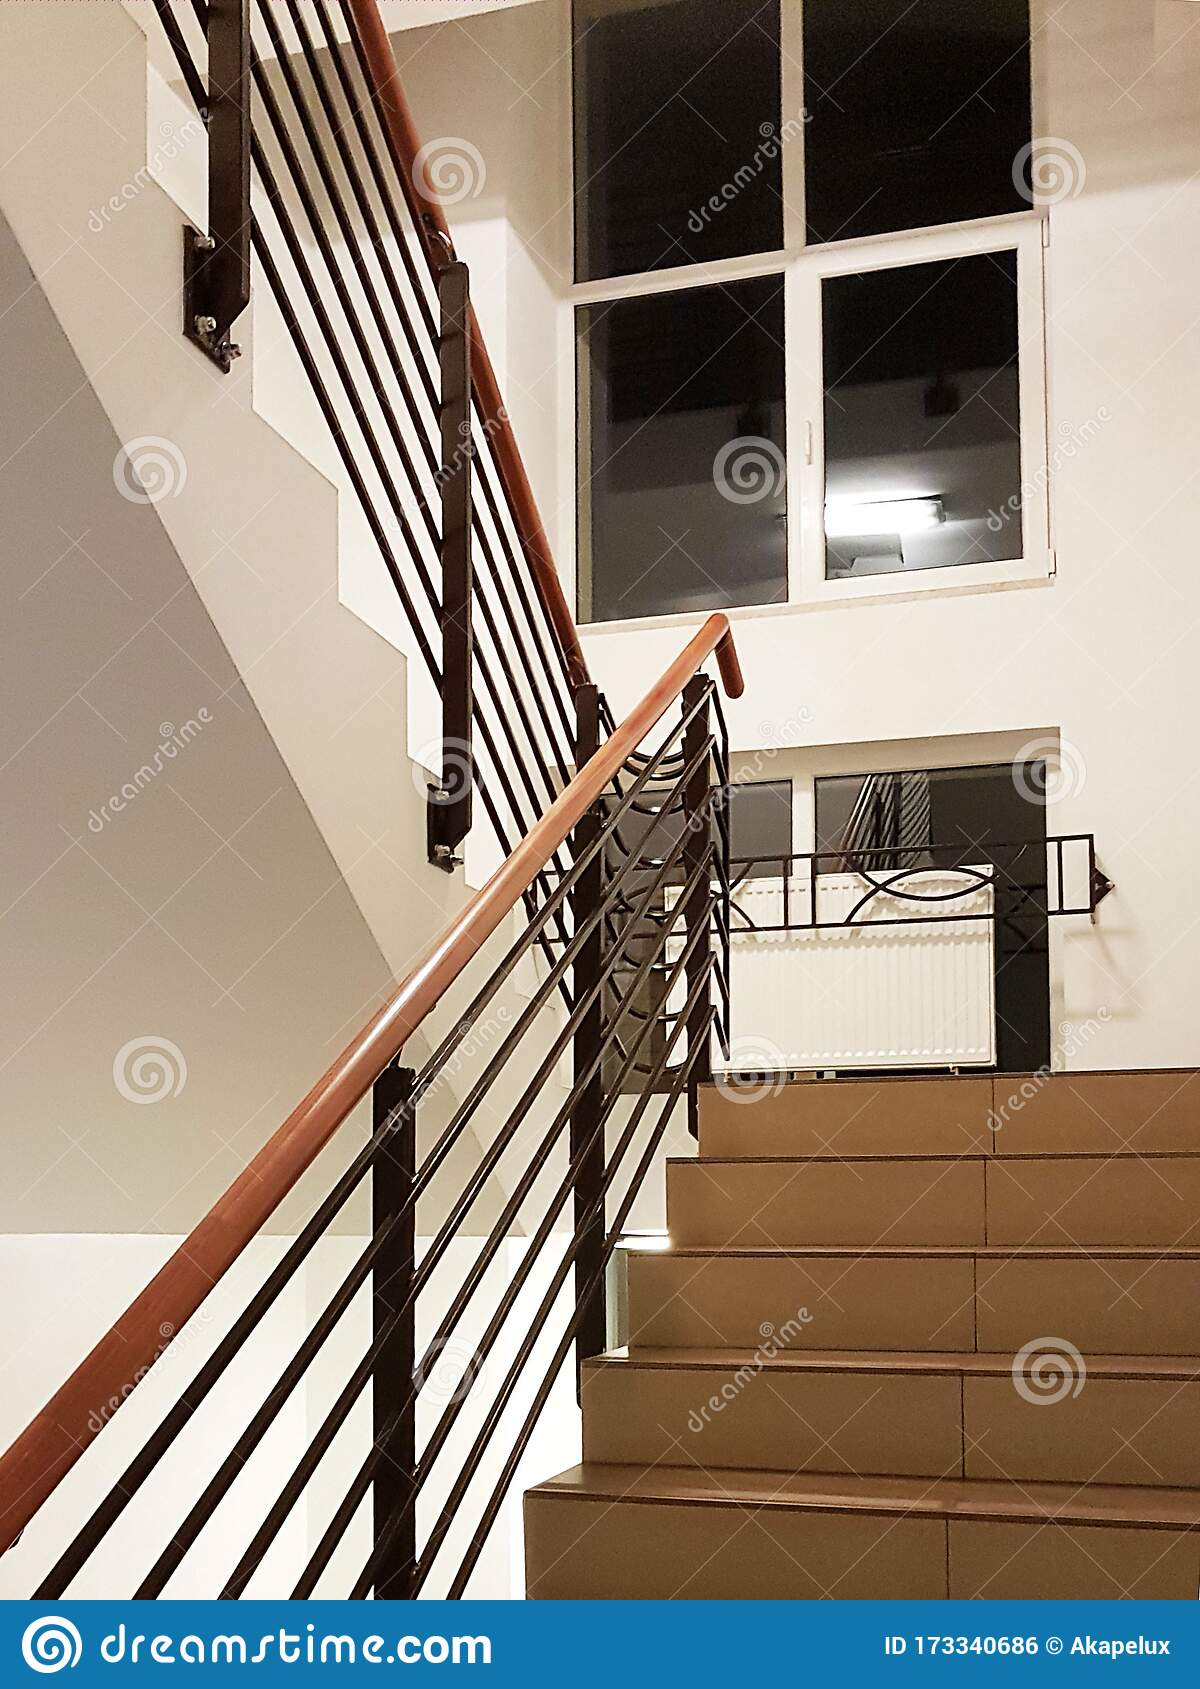 Lviv Ukraine 2 2 2020 A Staircase With Forged Cast Iron Railings In A Modern Building Illuminated With Light From Editorial Photo Image Of Dirty Entrance 173340686